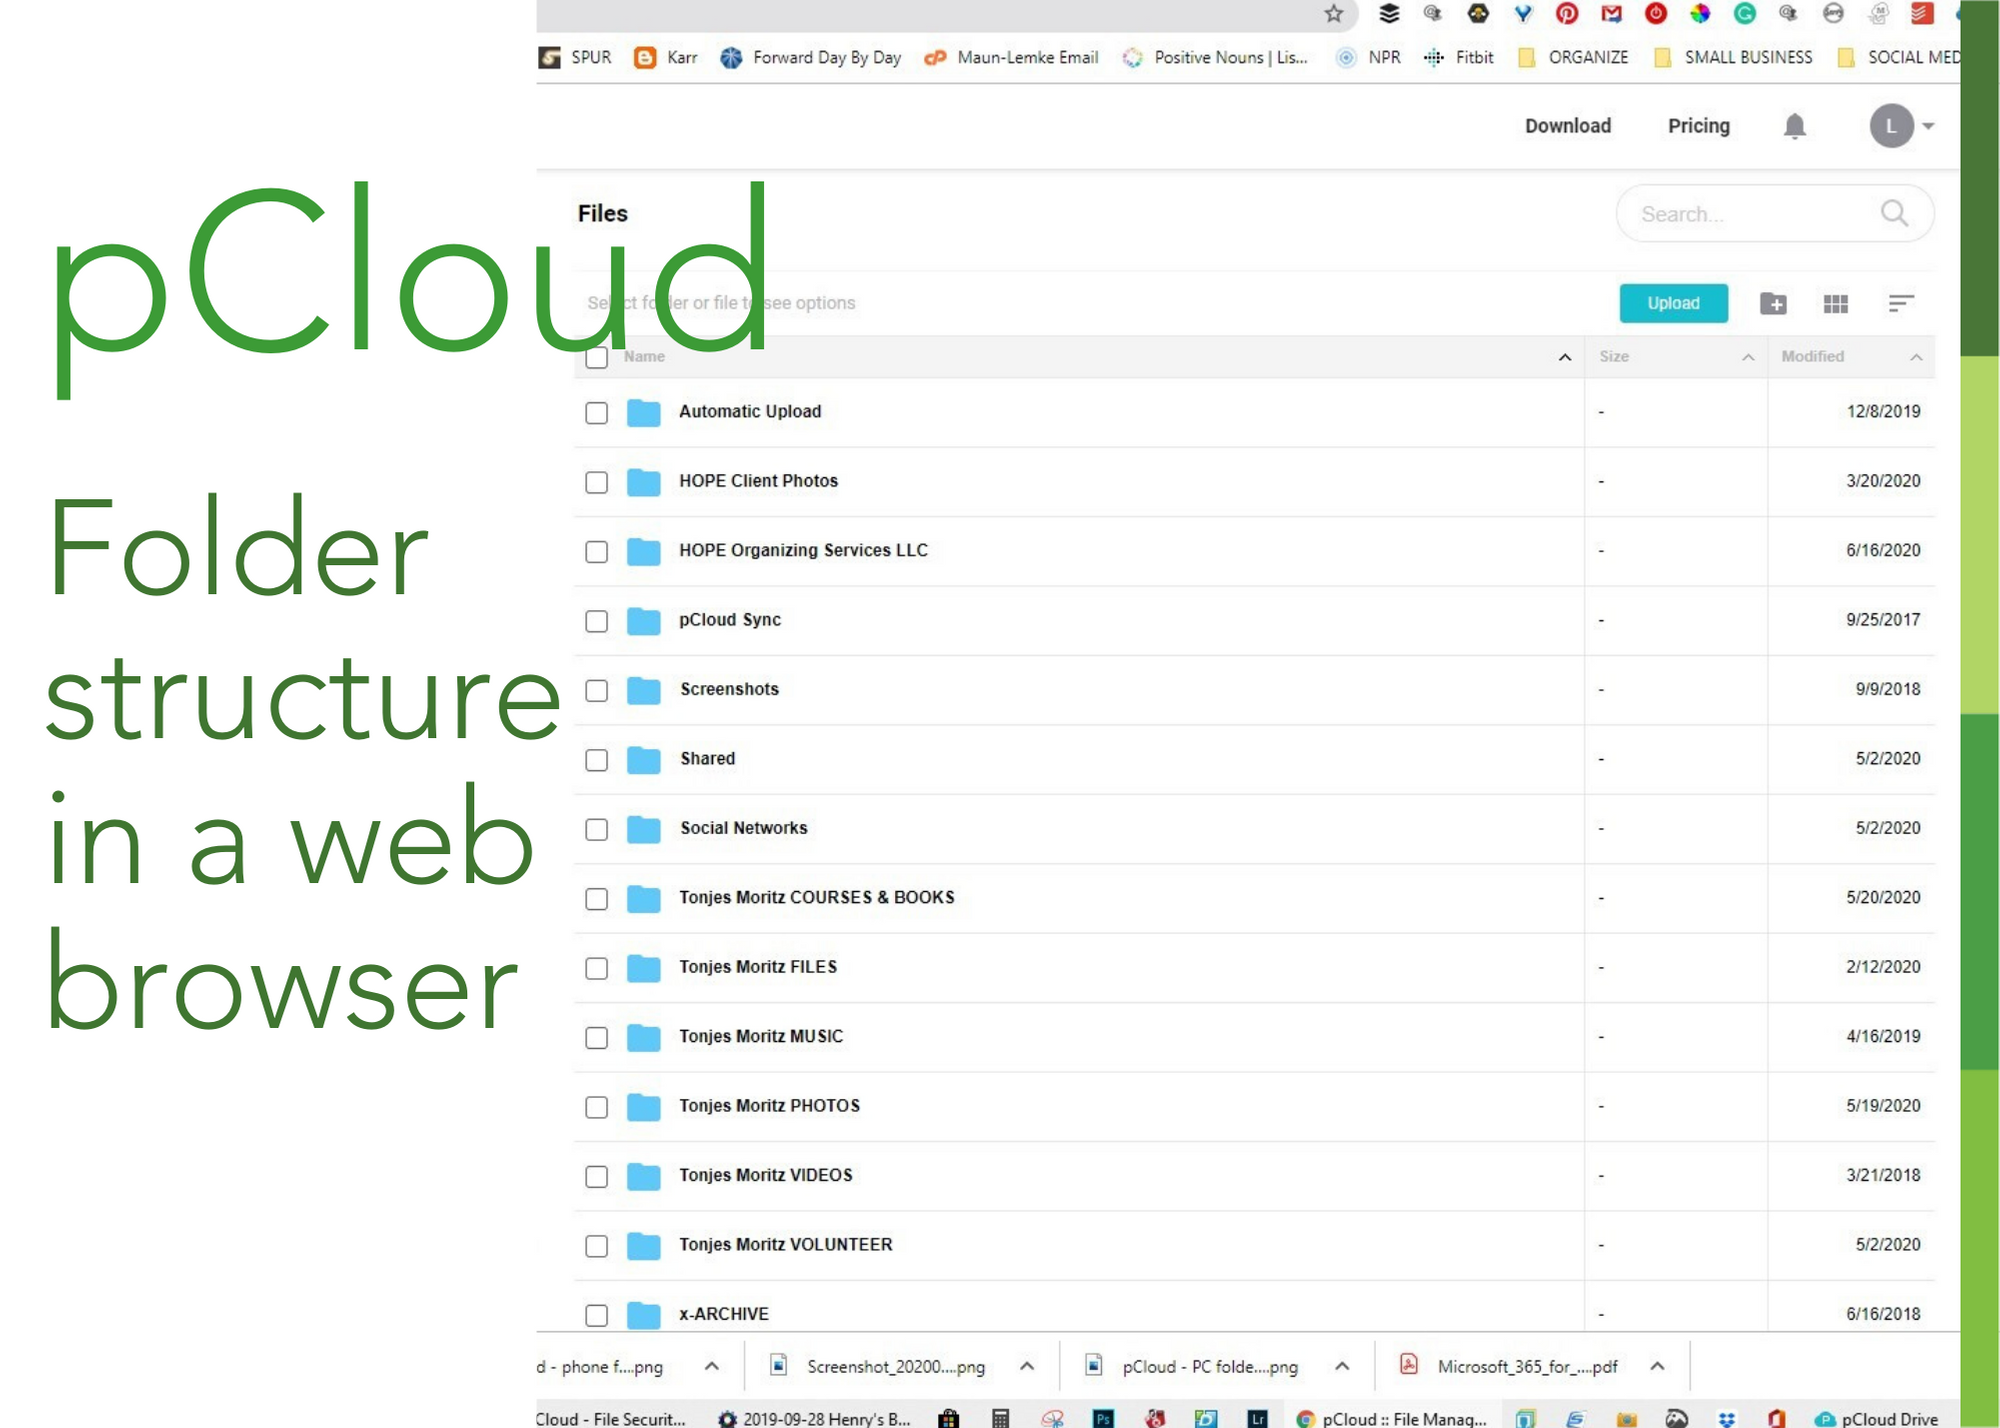 pcloud in a web browser